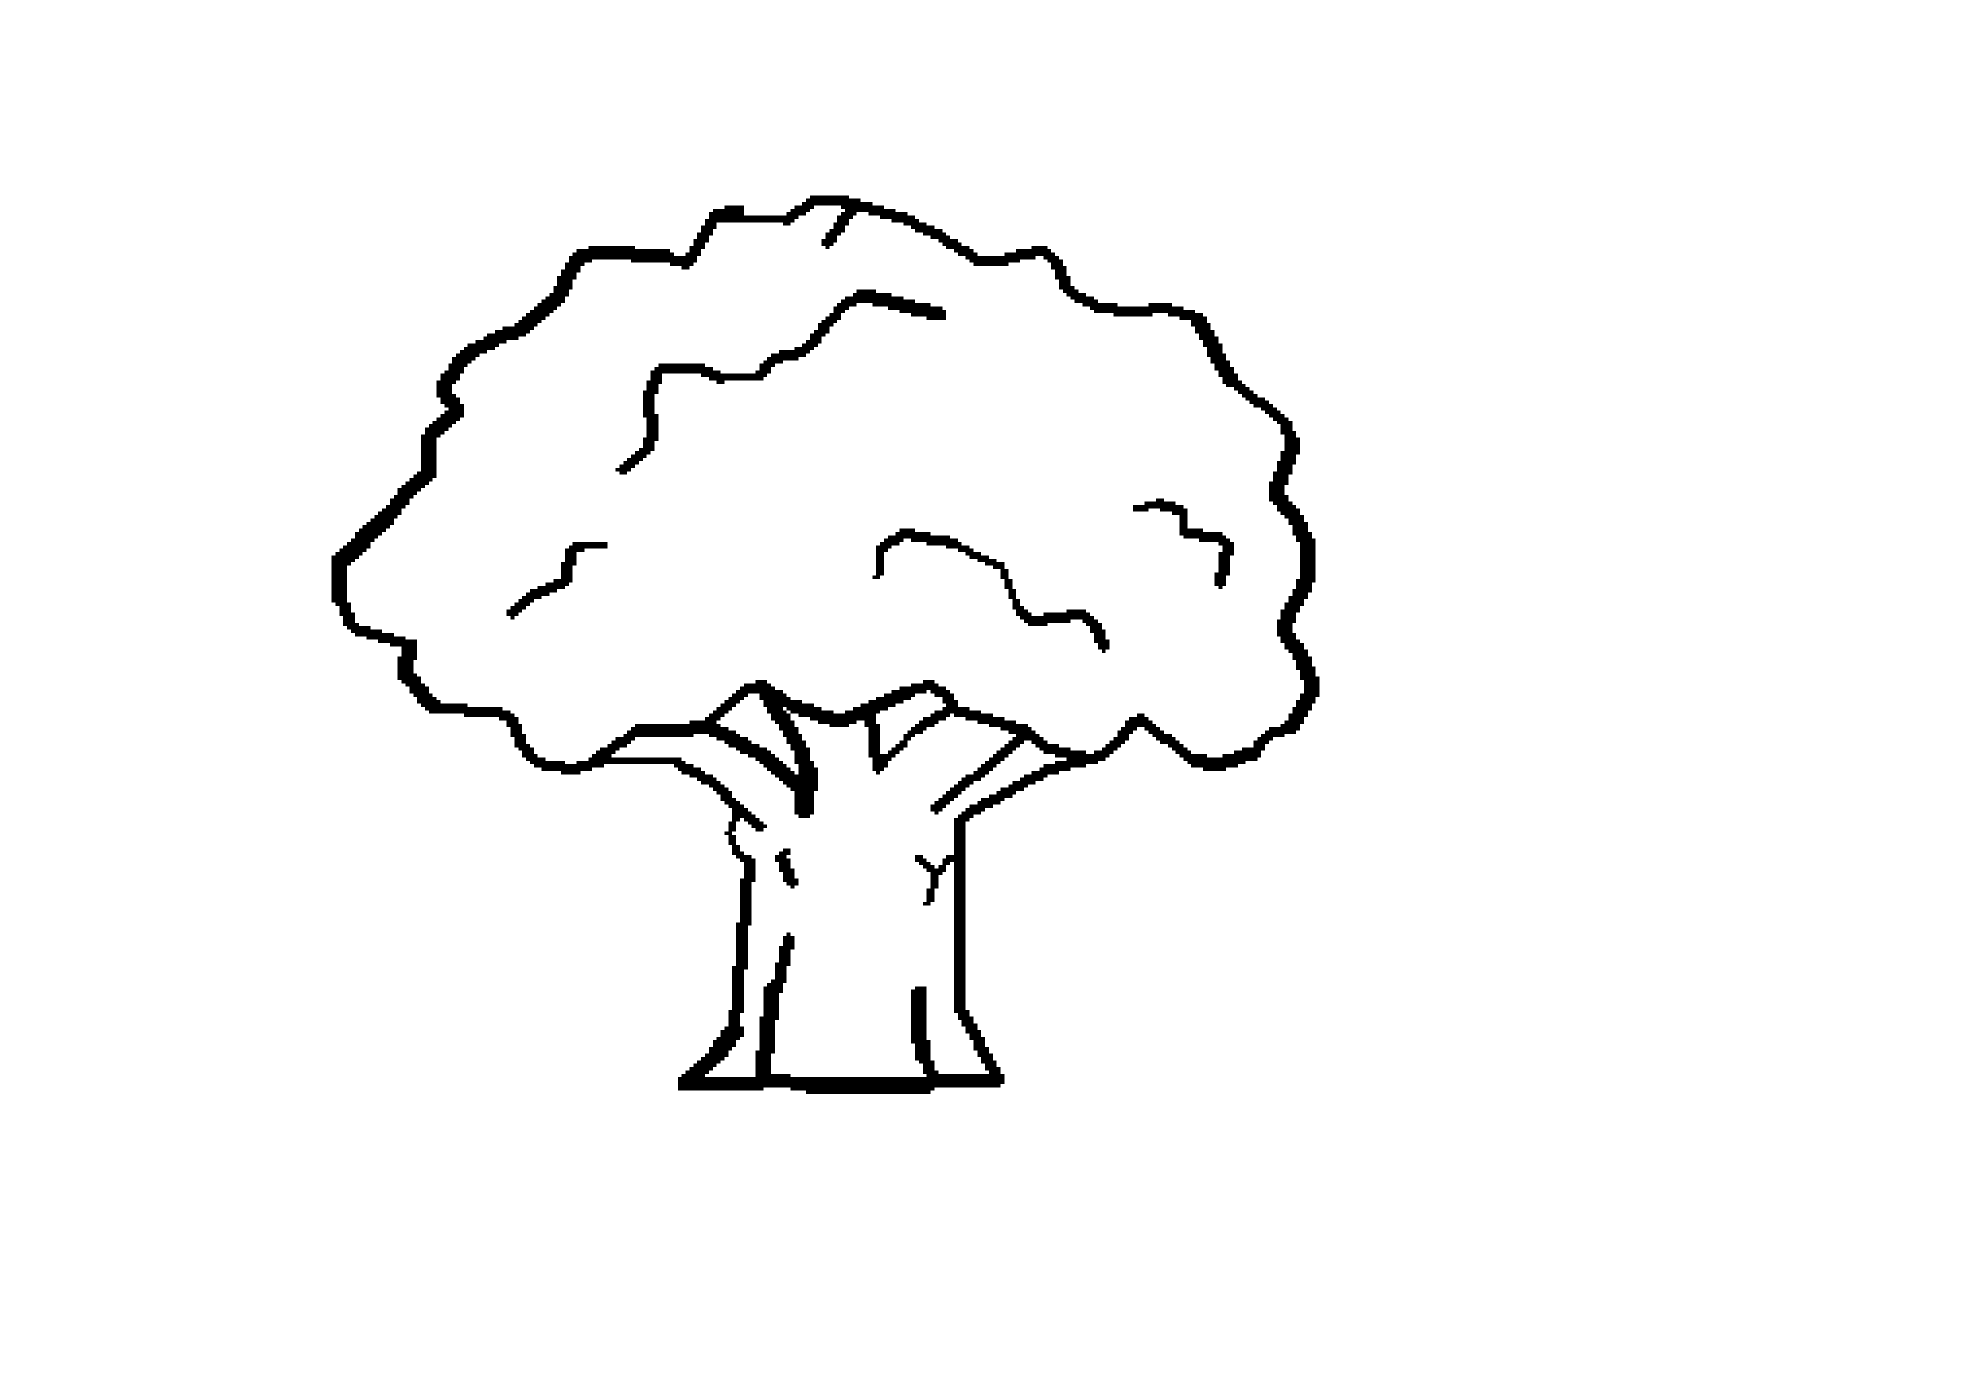 Tree Clipart Black And White Clipart Bes-Tree Clipart Black And White Clipart Best-15